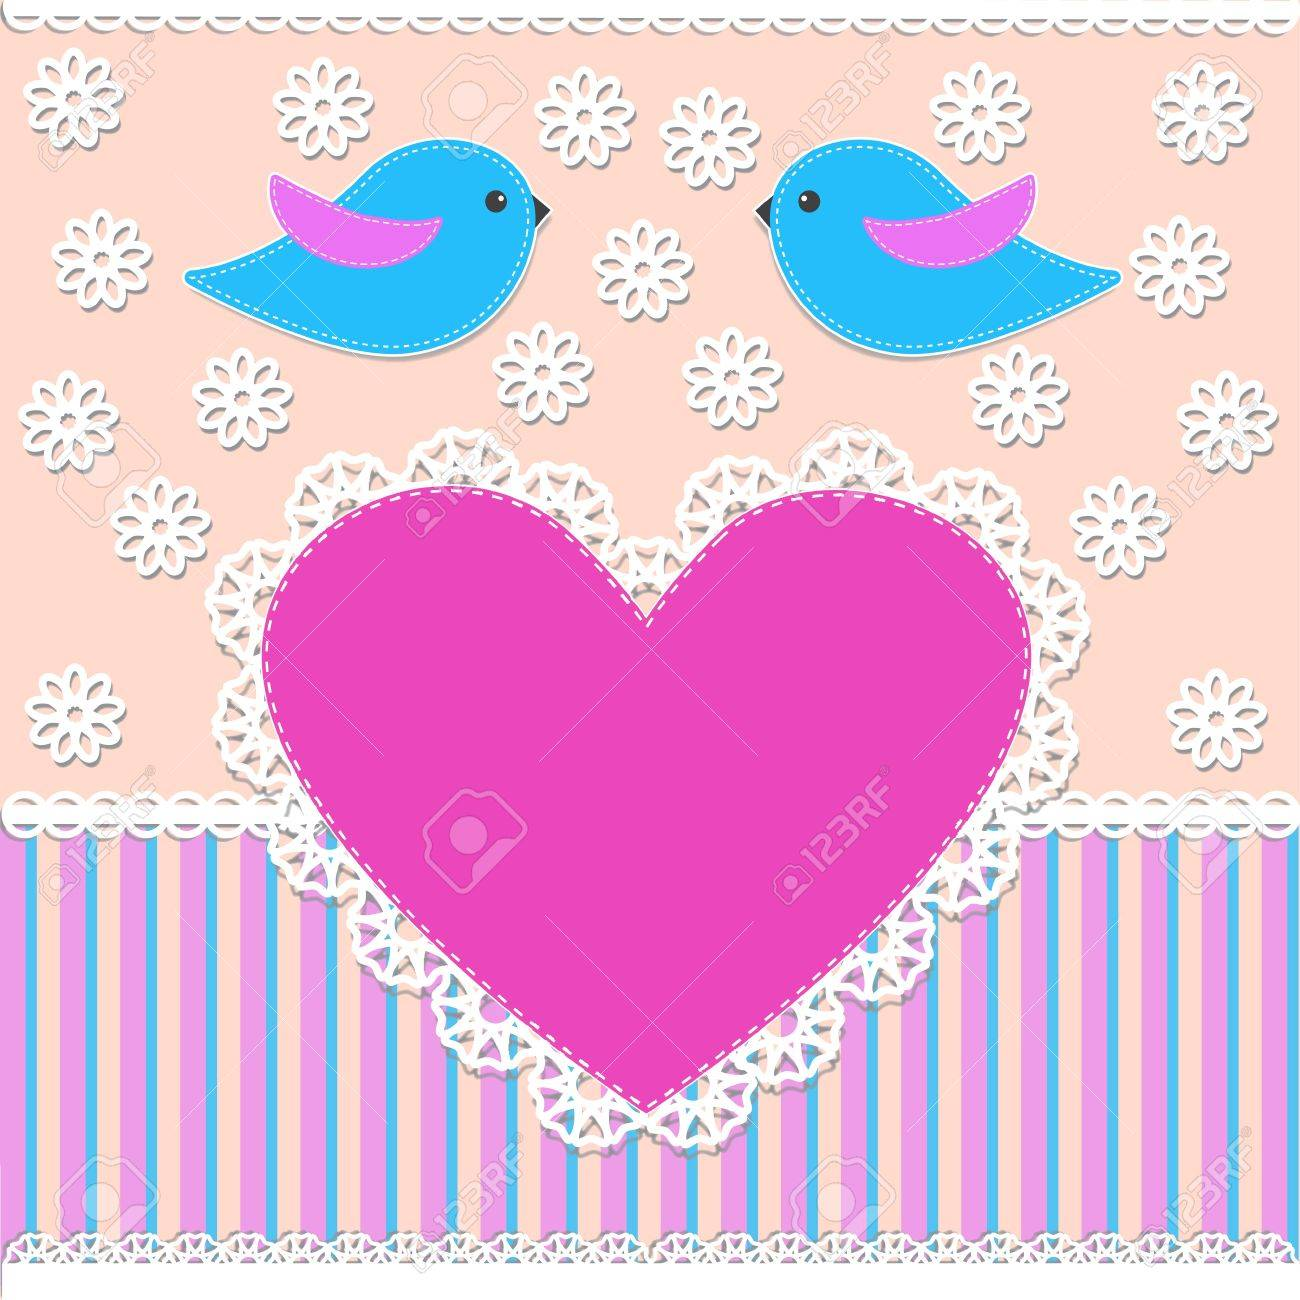 Greeting card with birds.Vector illustration in scrapbook style Stock Vector - 11648212